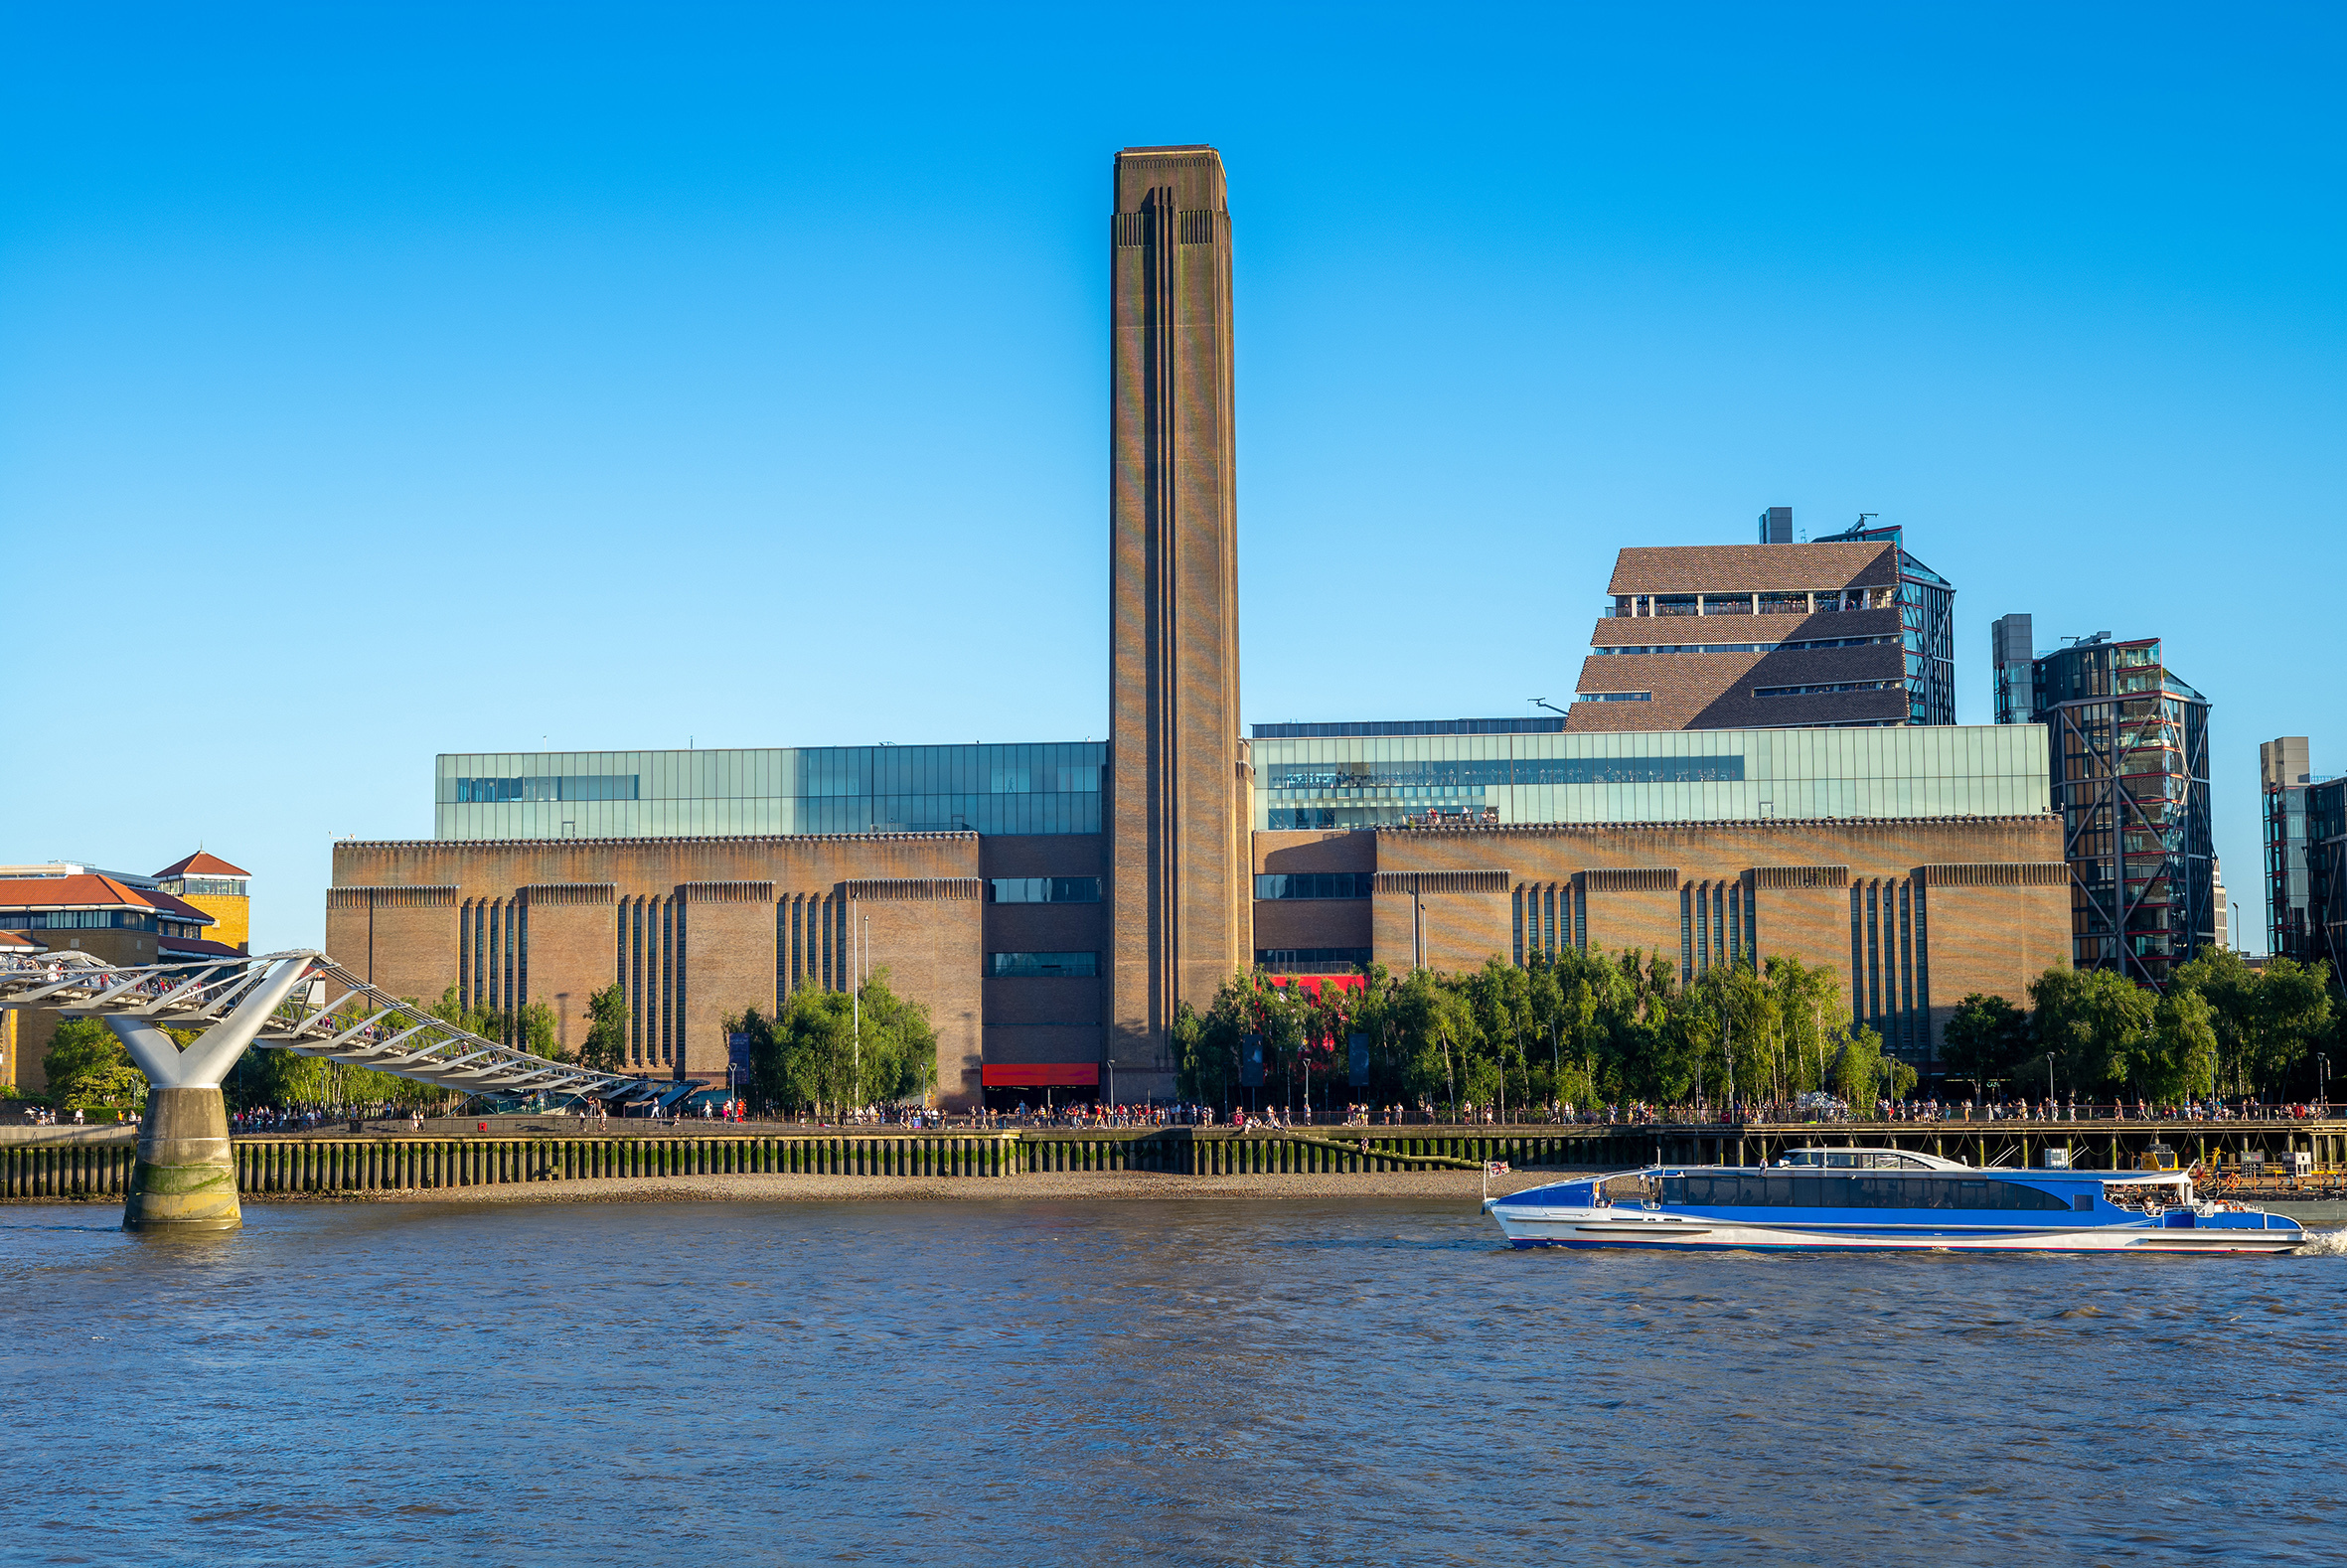 The Tate Modern and Tate Britain reopen in London today